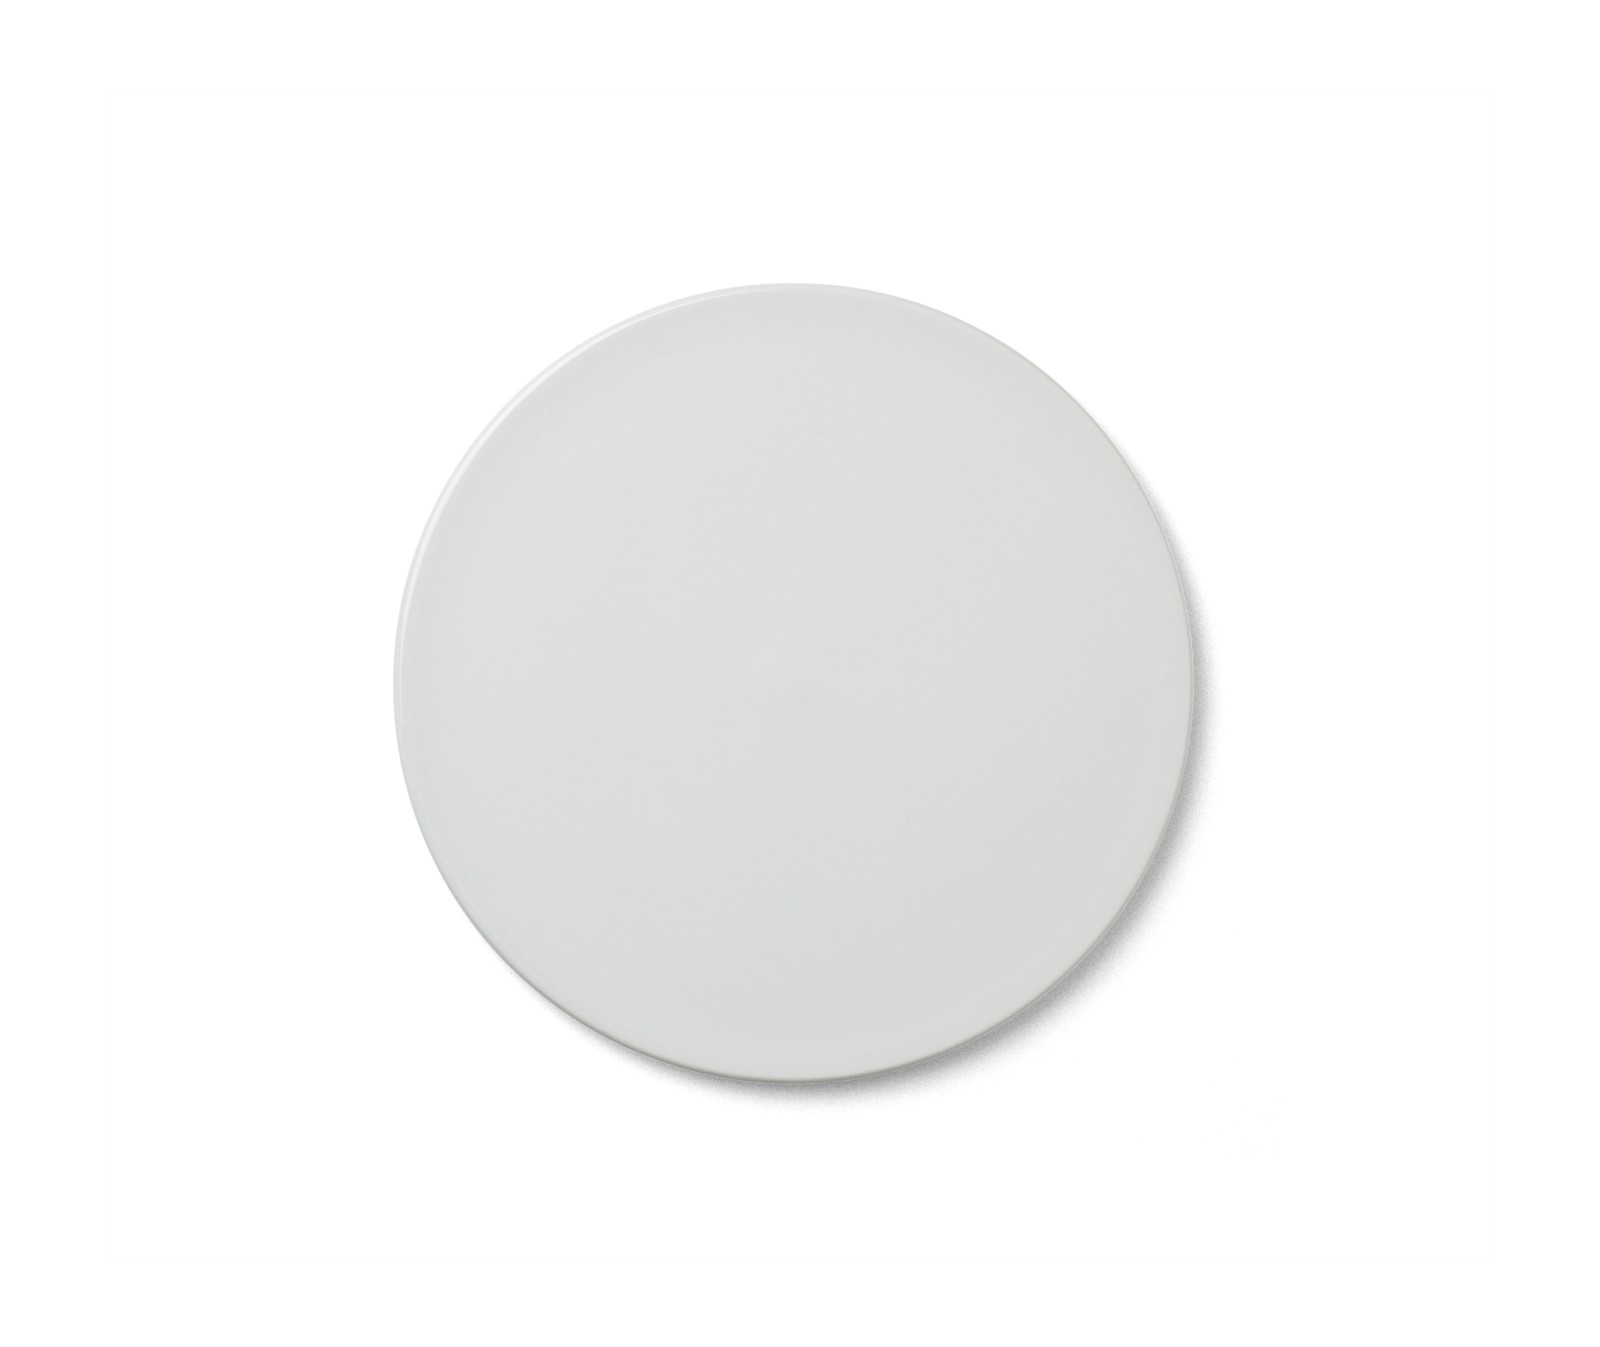 New Norm Plate/Lid - Set of 6 Diameter 13.5, White